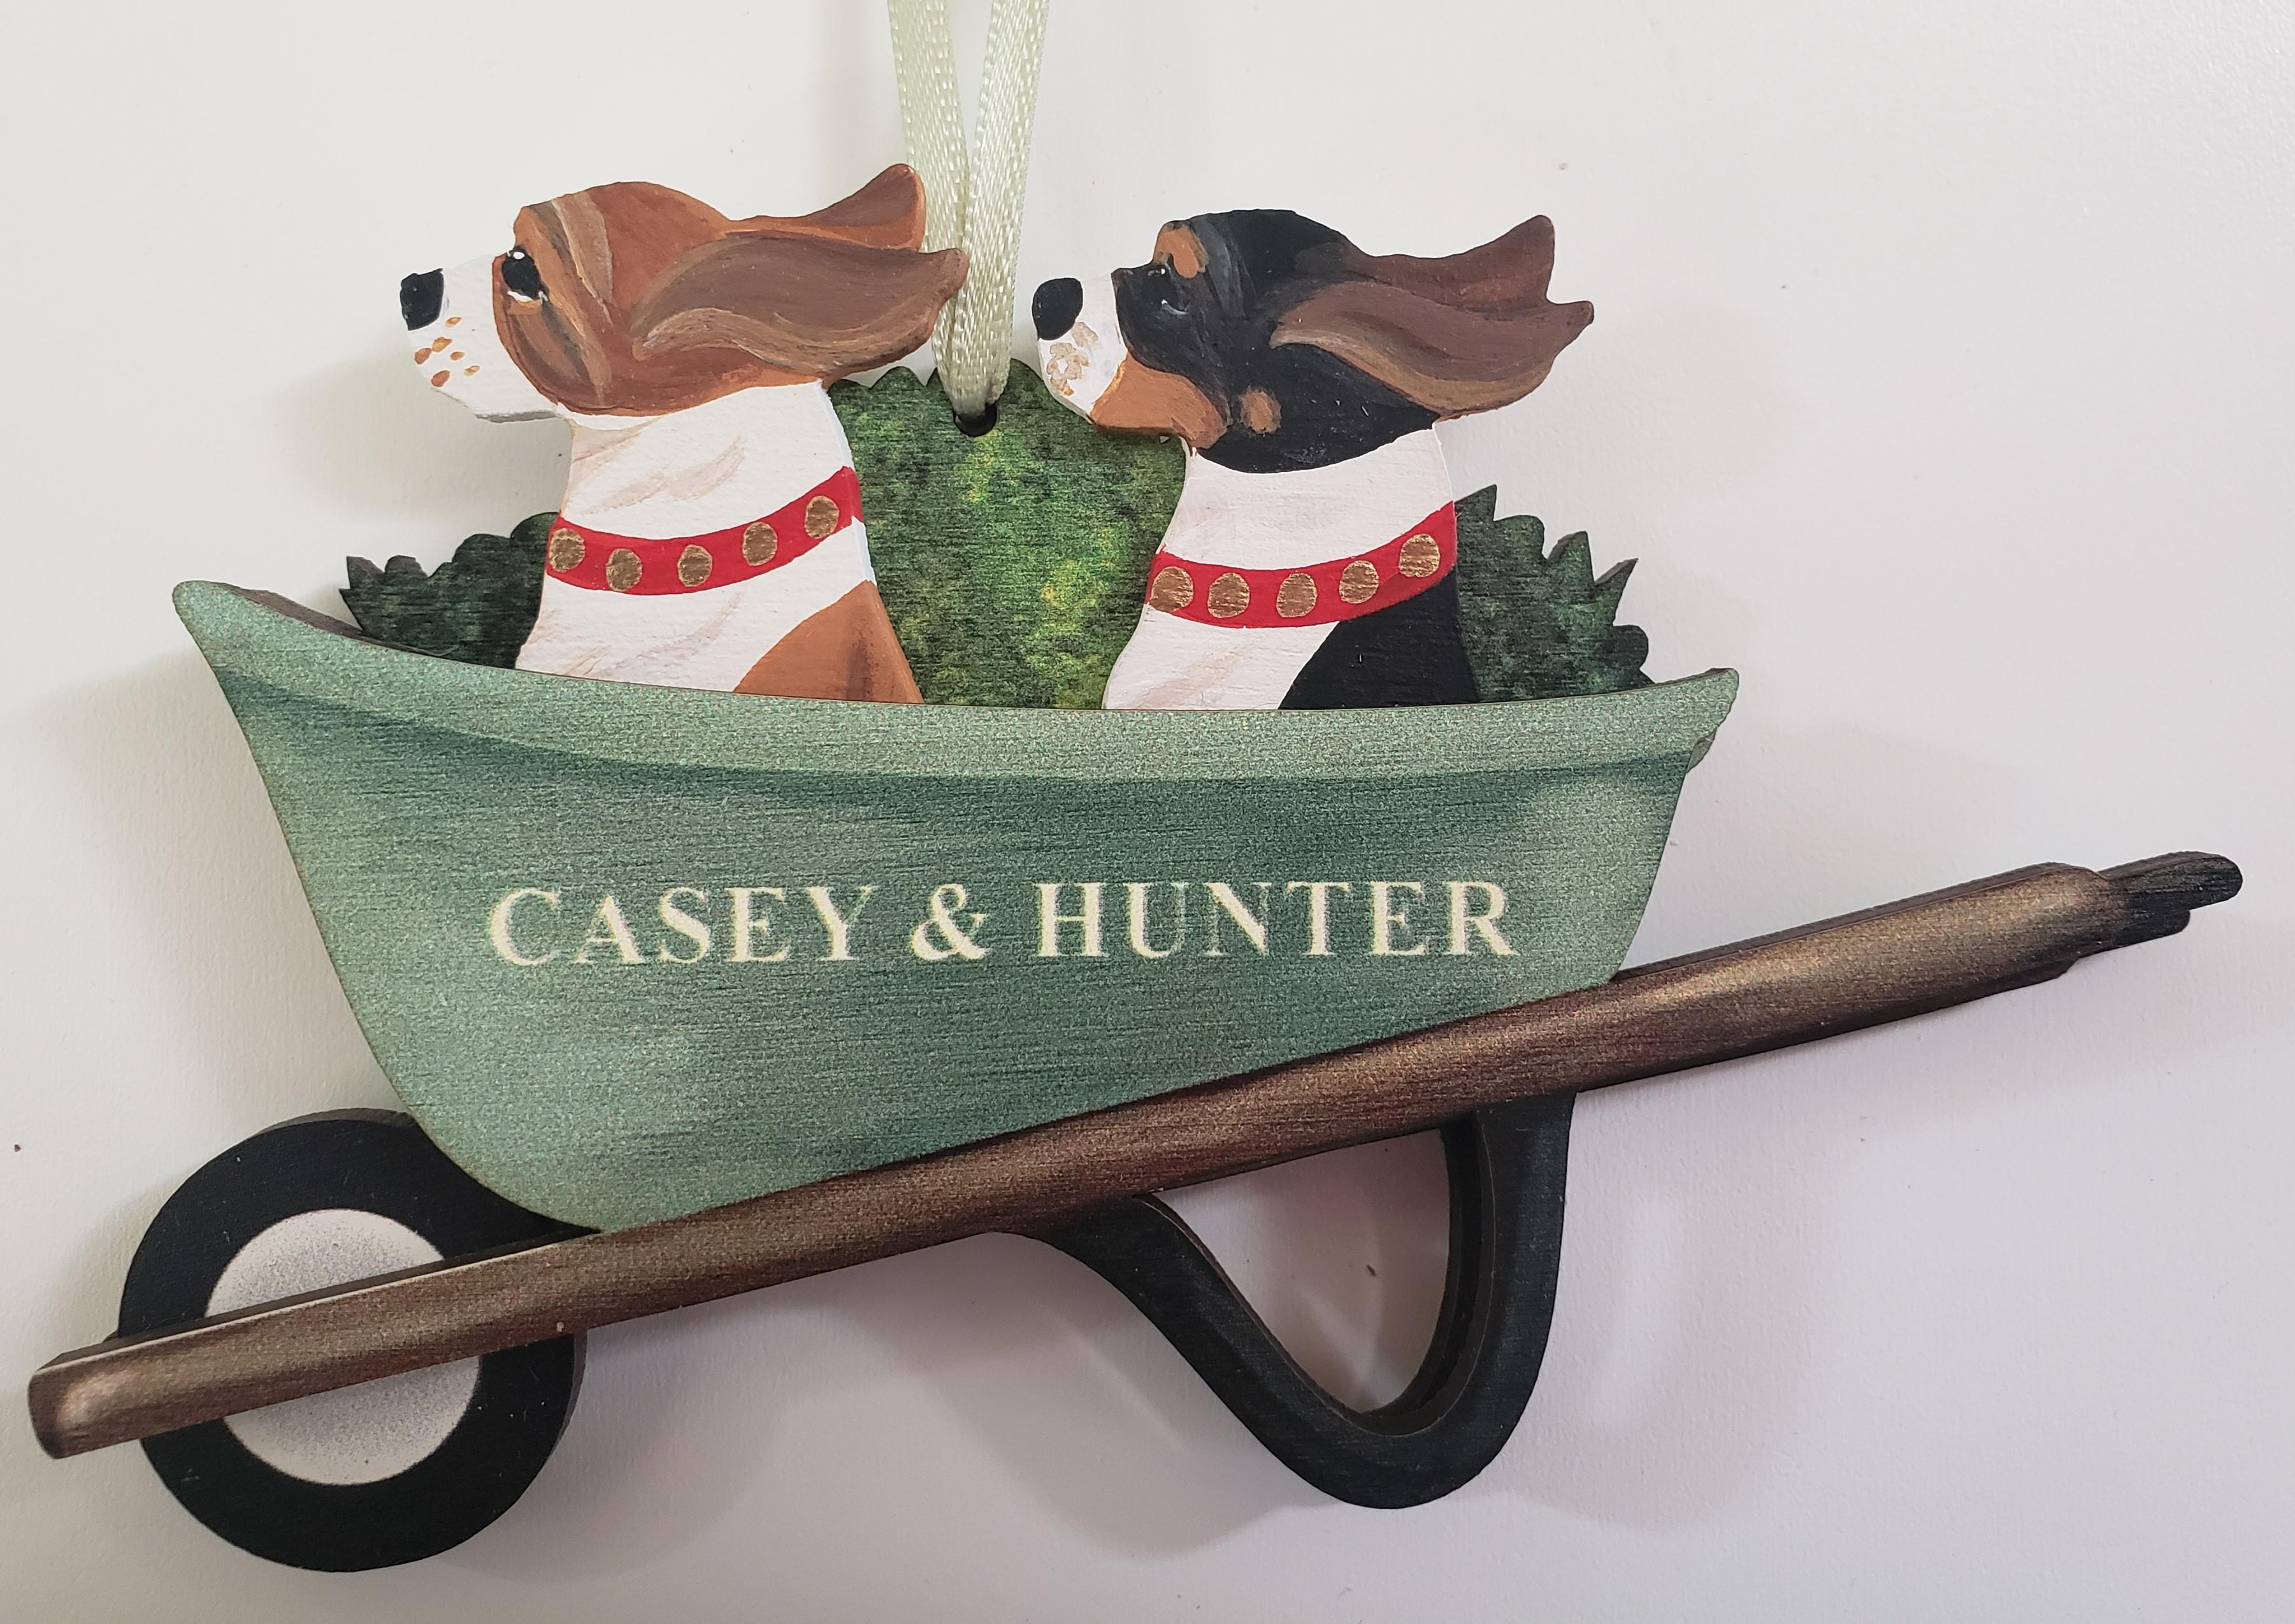 GREEN VINTAGE WHEELBARROW. 2 DOGS